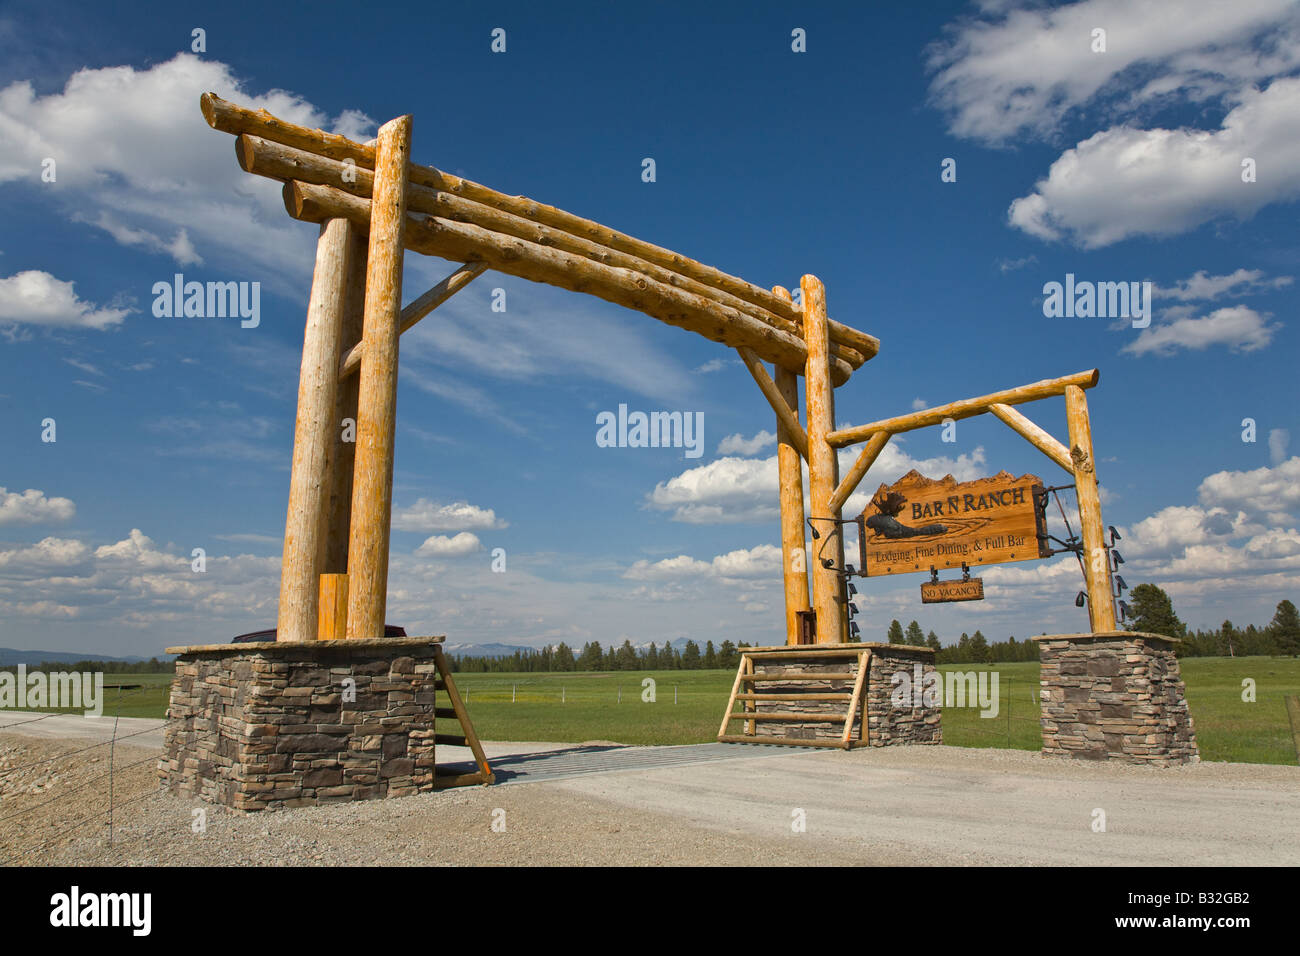 Entry sign to BAR N RANCH which is a guest ranch with fine food and accommodations WEST YELLOWSTONE MONTANA - Stock Image